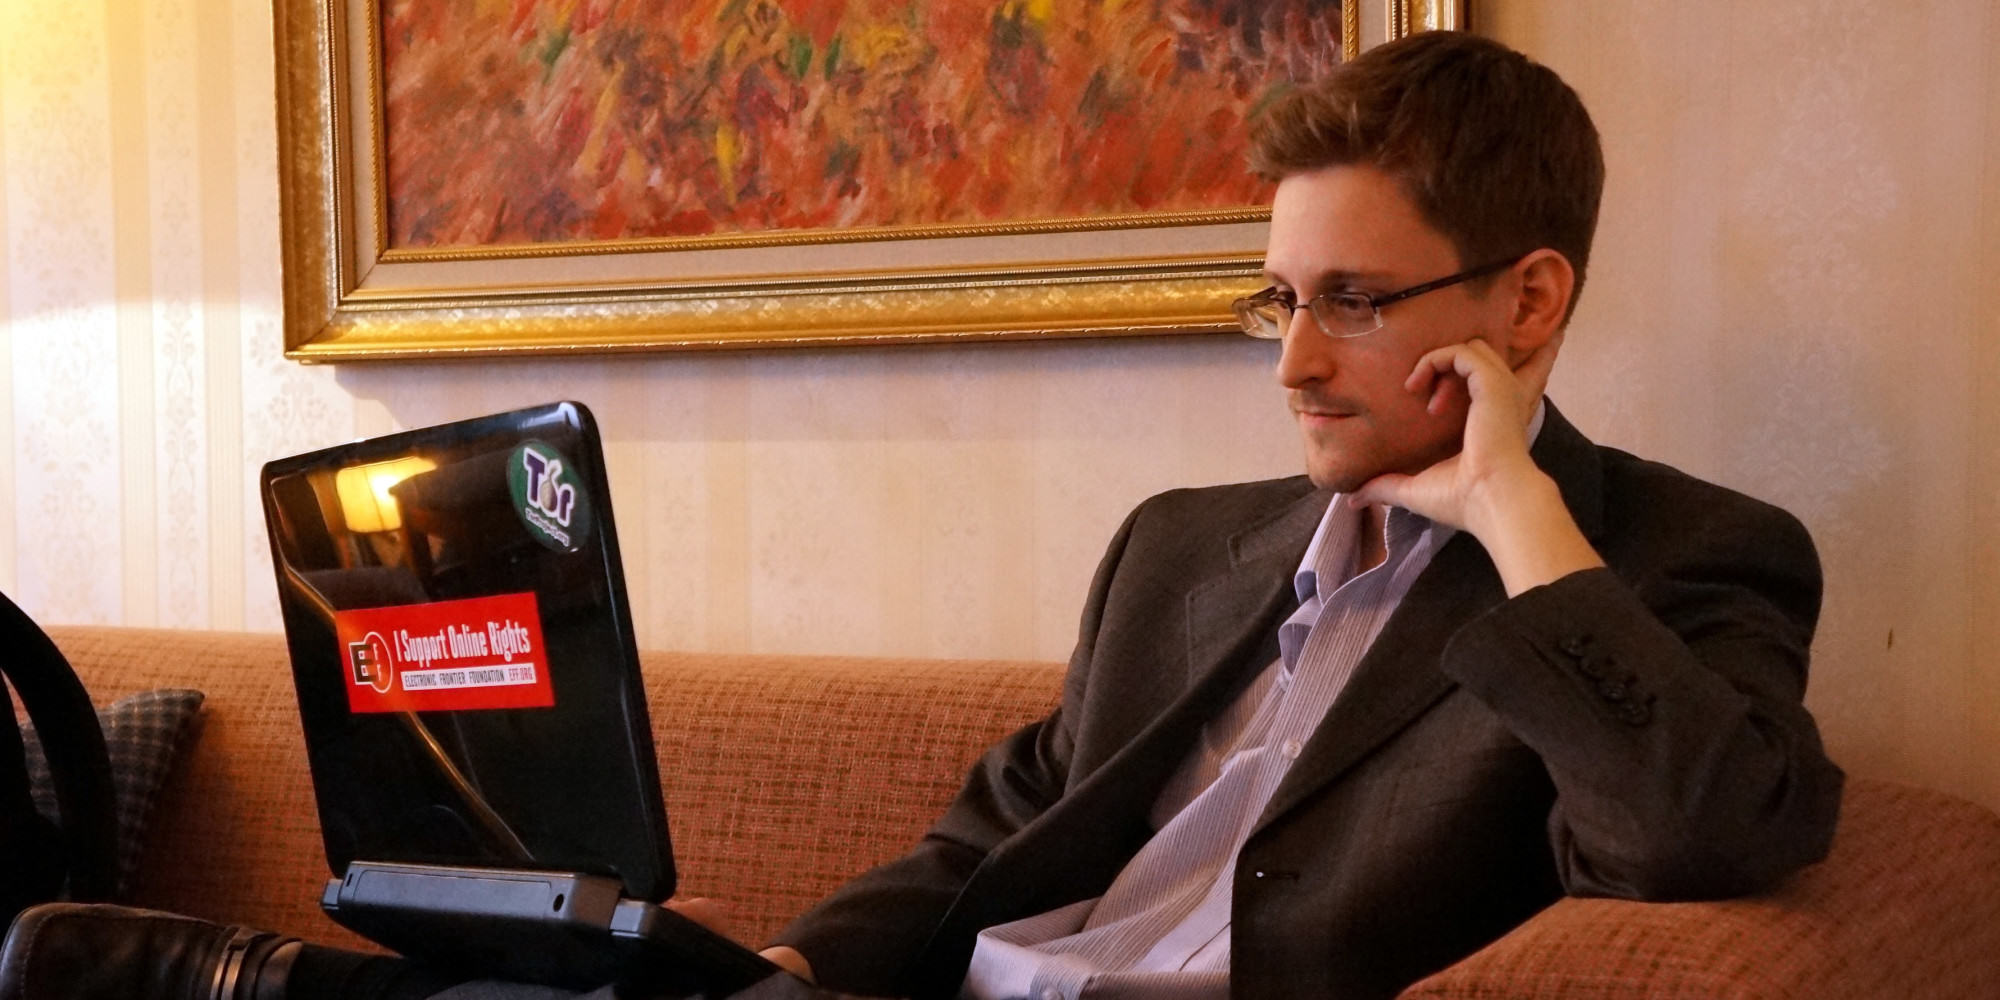 edward snowden aliens 3 Whistleblower Edward Snowden Reckons Aliens Are Trying To Make Contact With Earth